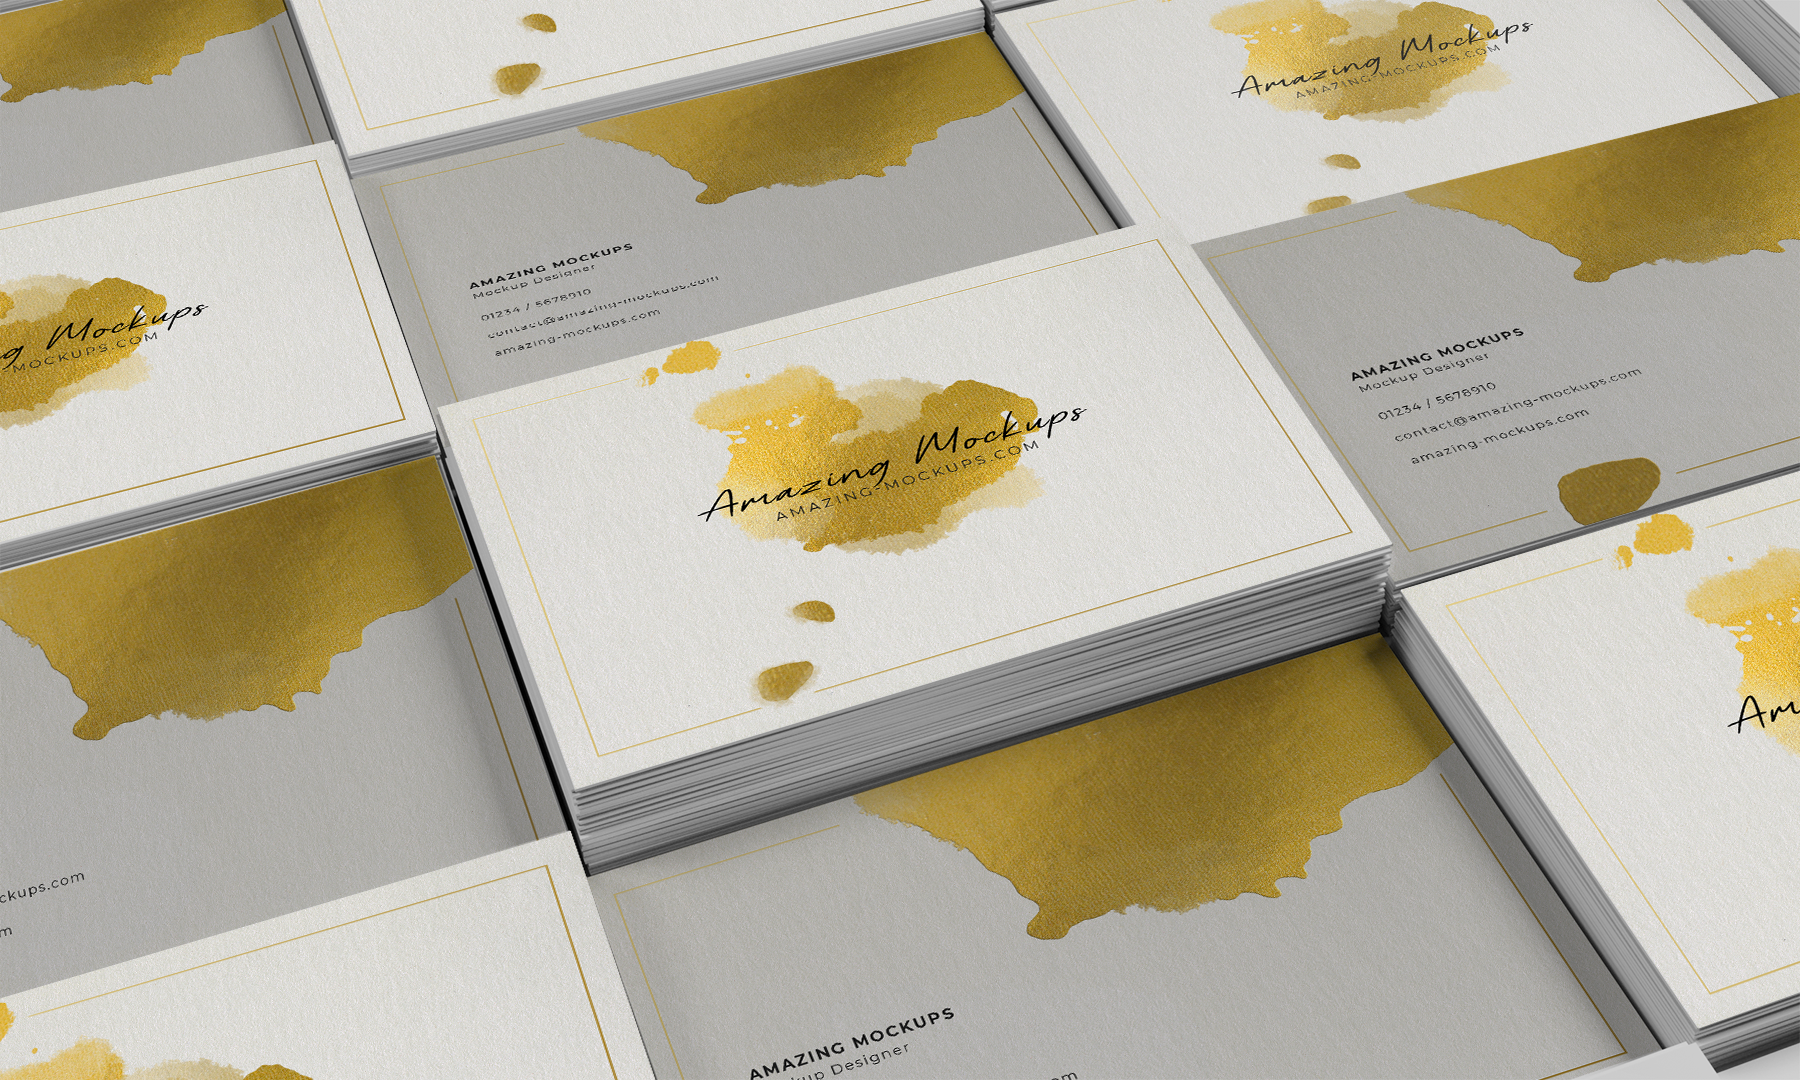 Free Business Cards Showcasing Mockup